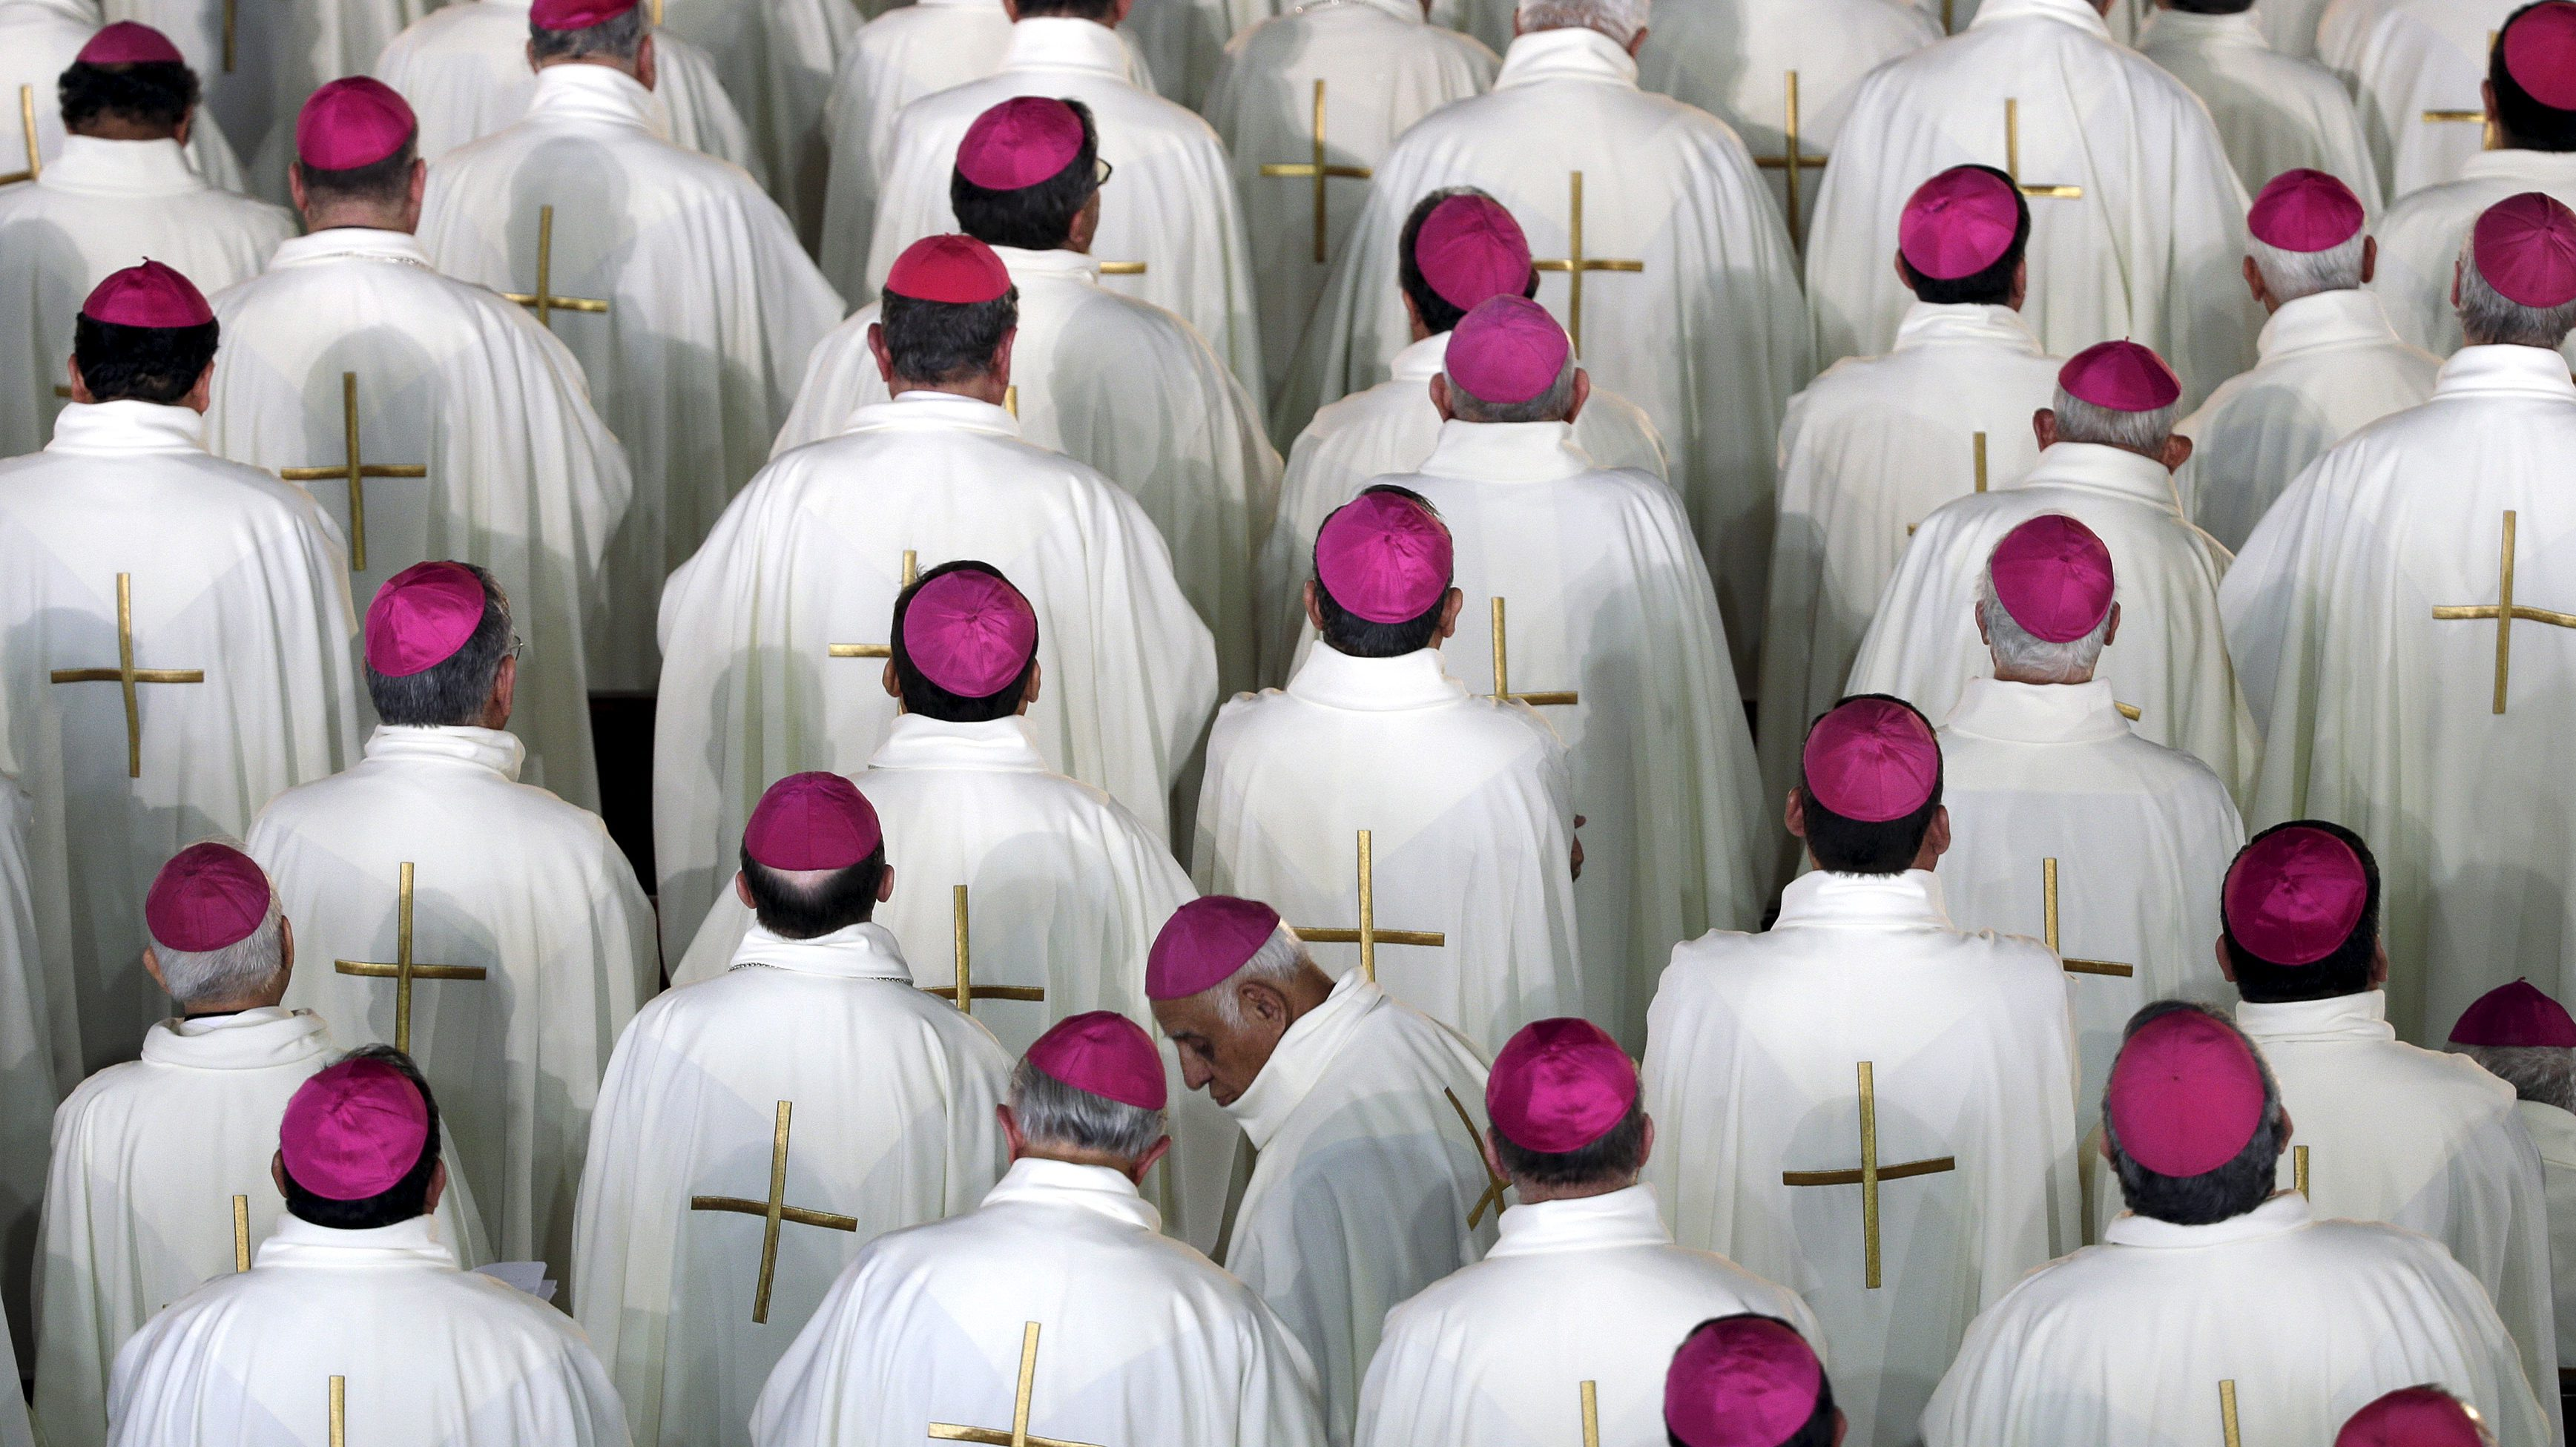 Members of the cleric participate in a mass celebrated by Pope Francis at Guadalupe's basilica in Mexico City, February 13, 2016. REUTERS/Max Rossi      TPX IMAGES OF THE DAY            - RTX26TMI